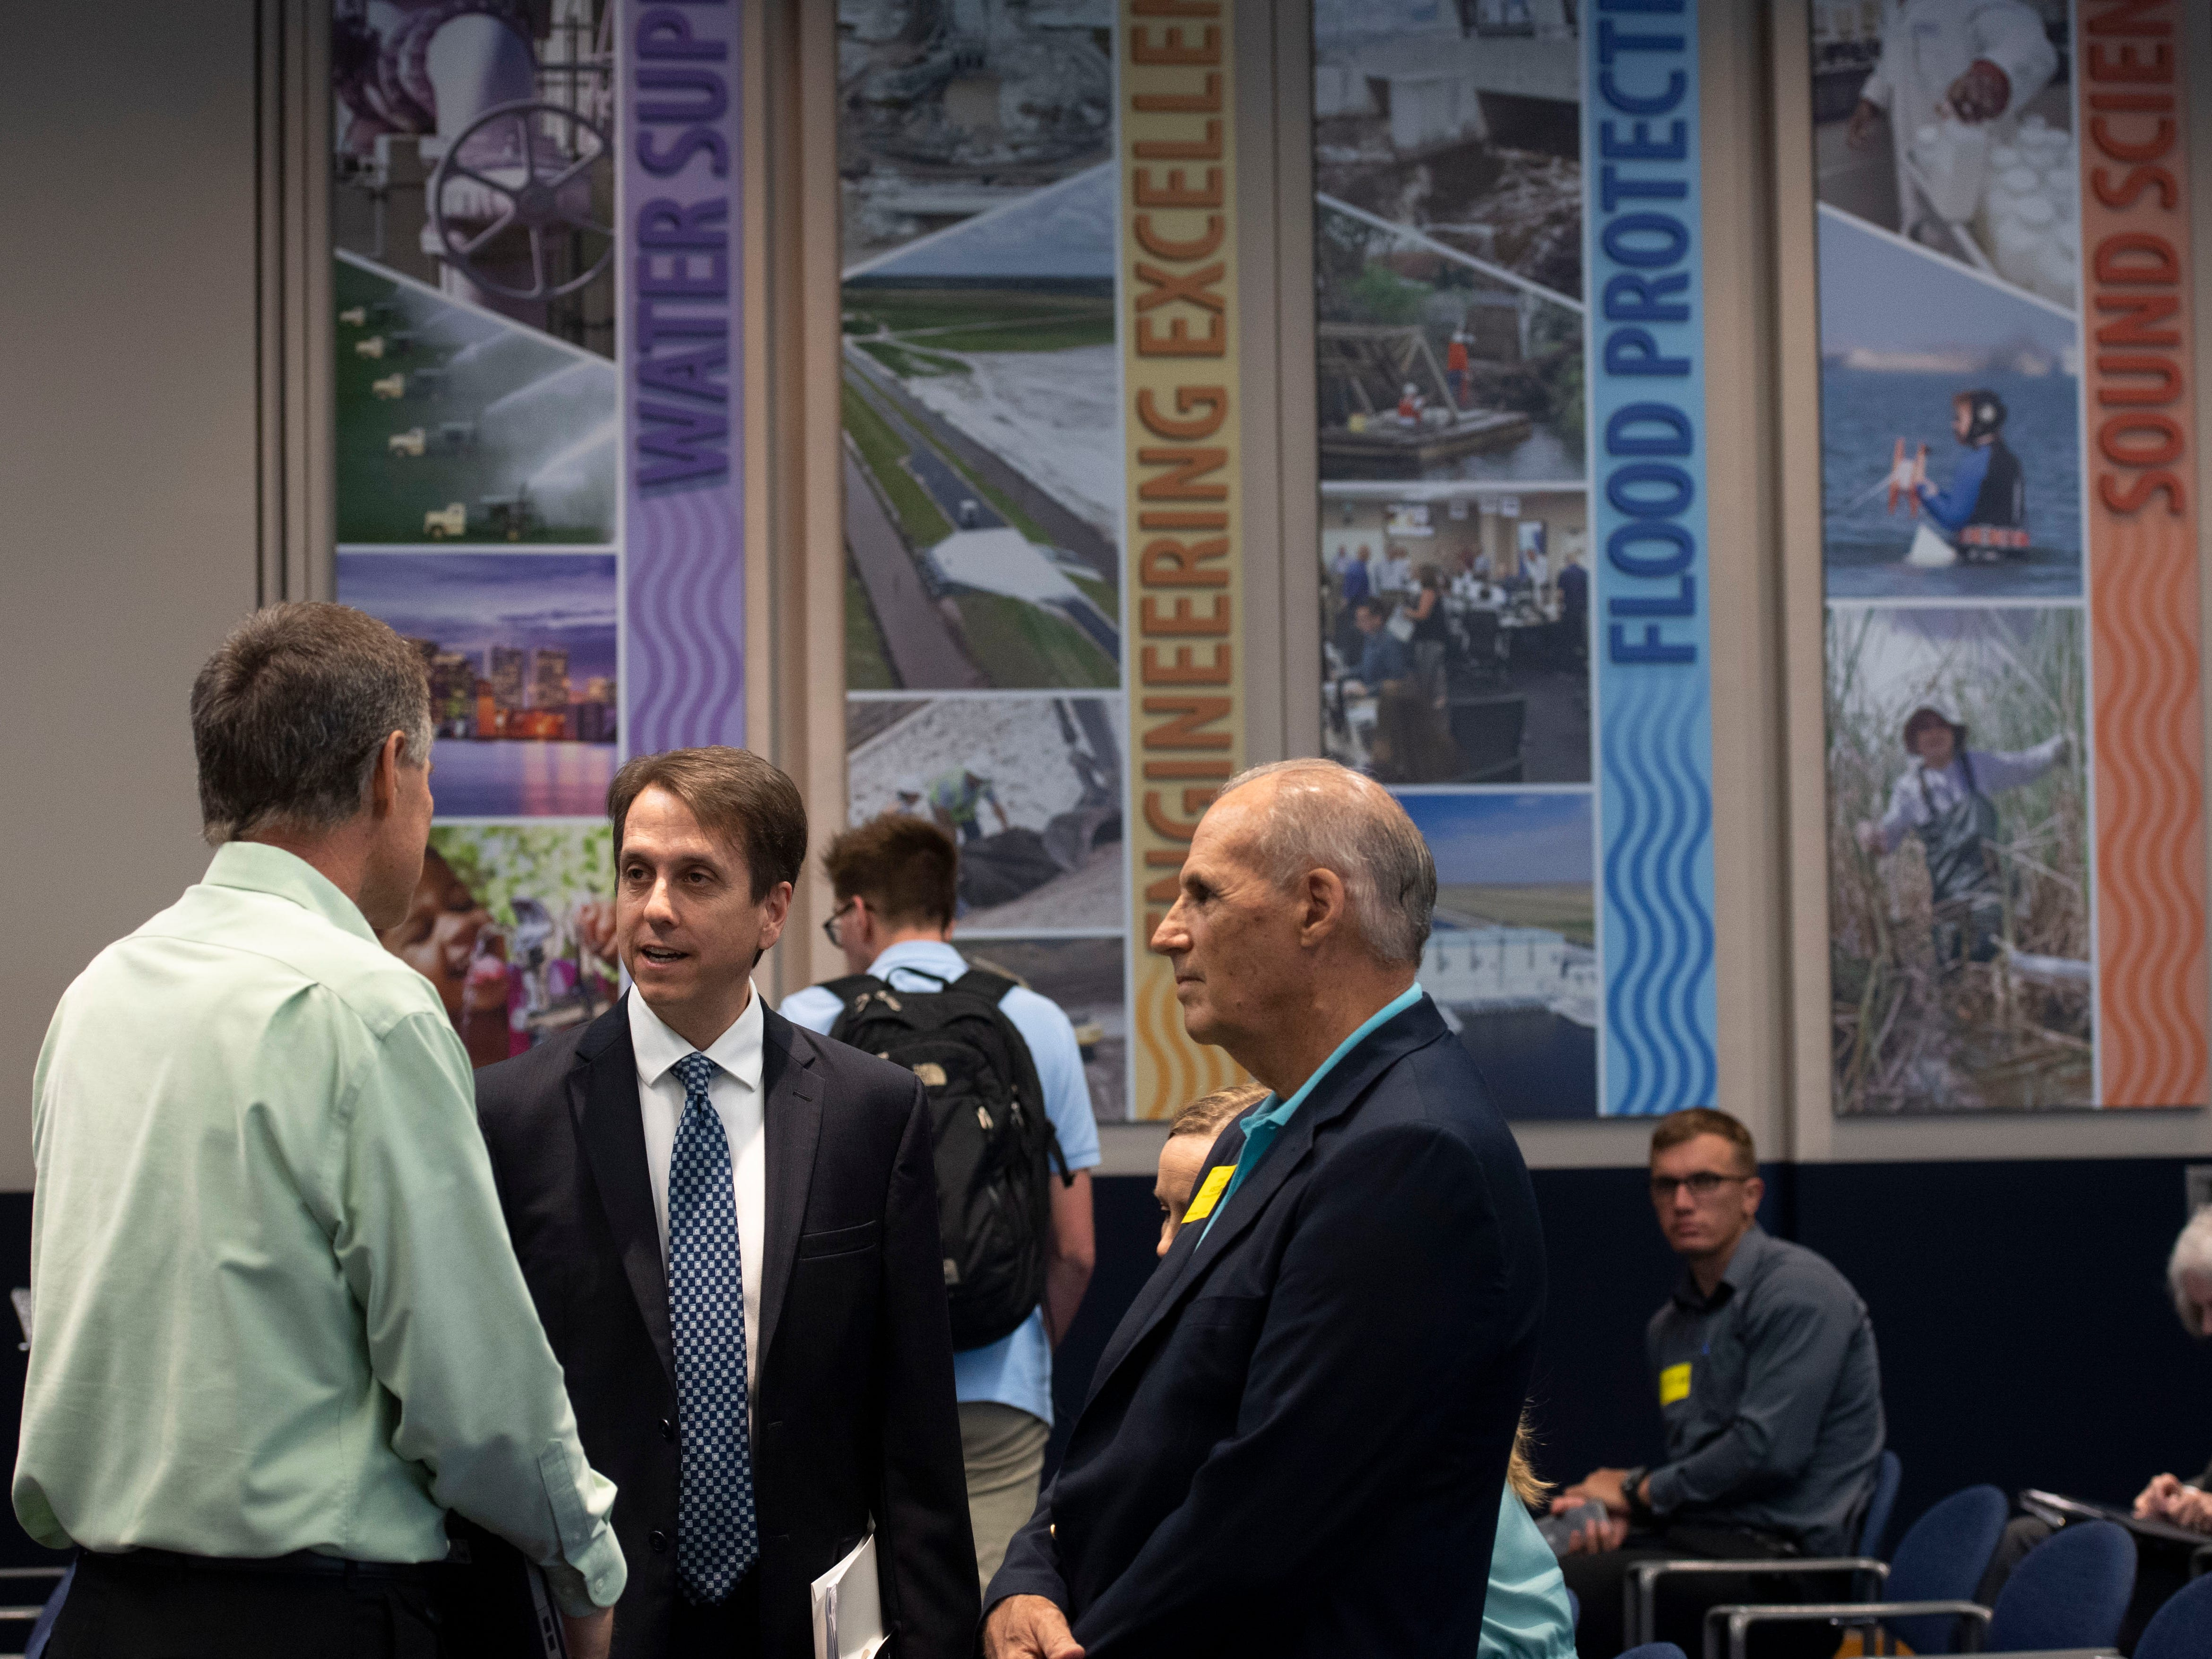 Minutes ahead of his appointment as the executive director of the South Florida Water Management District, Drew Bartlett (center), talks with Gary Goforth (left), an environmental engineer and former district scientist, and Mark Perry, executive director of the Florida Oceanographic Society, on March 14, 2019, at the South Florida Water Management District offices in West Palm Beach. Currently a deputy secretary at Florida's Department of Environmental Protection, Bartlett's reign over the water management district begins April 1.